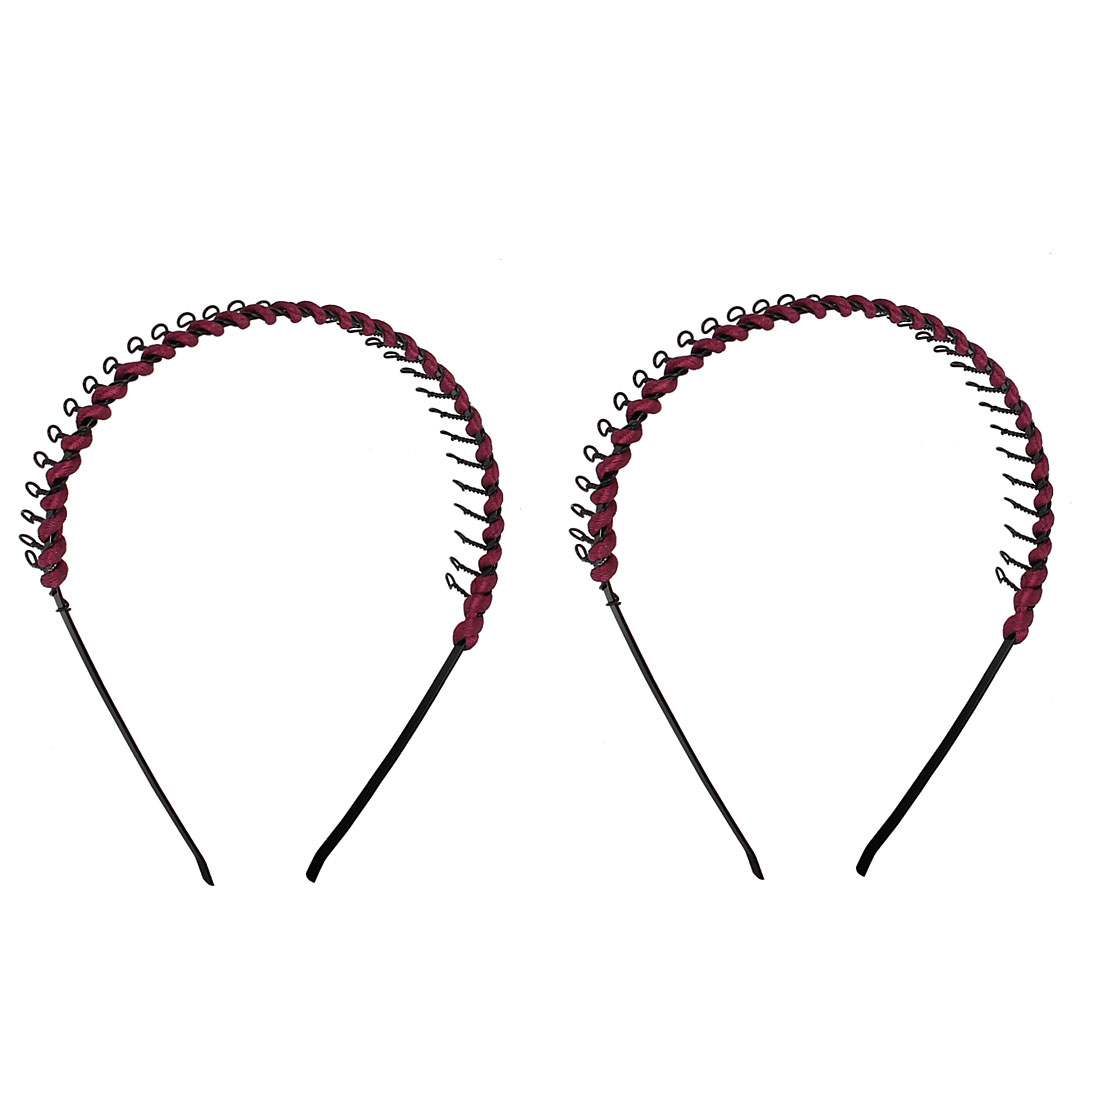 2 Pcs Lady Burgundy Black Metal Teeth Hair Hoop Headband Ornament